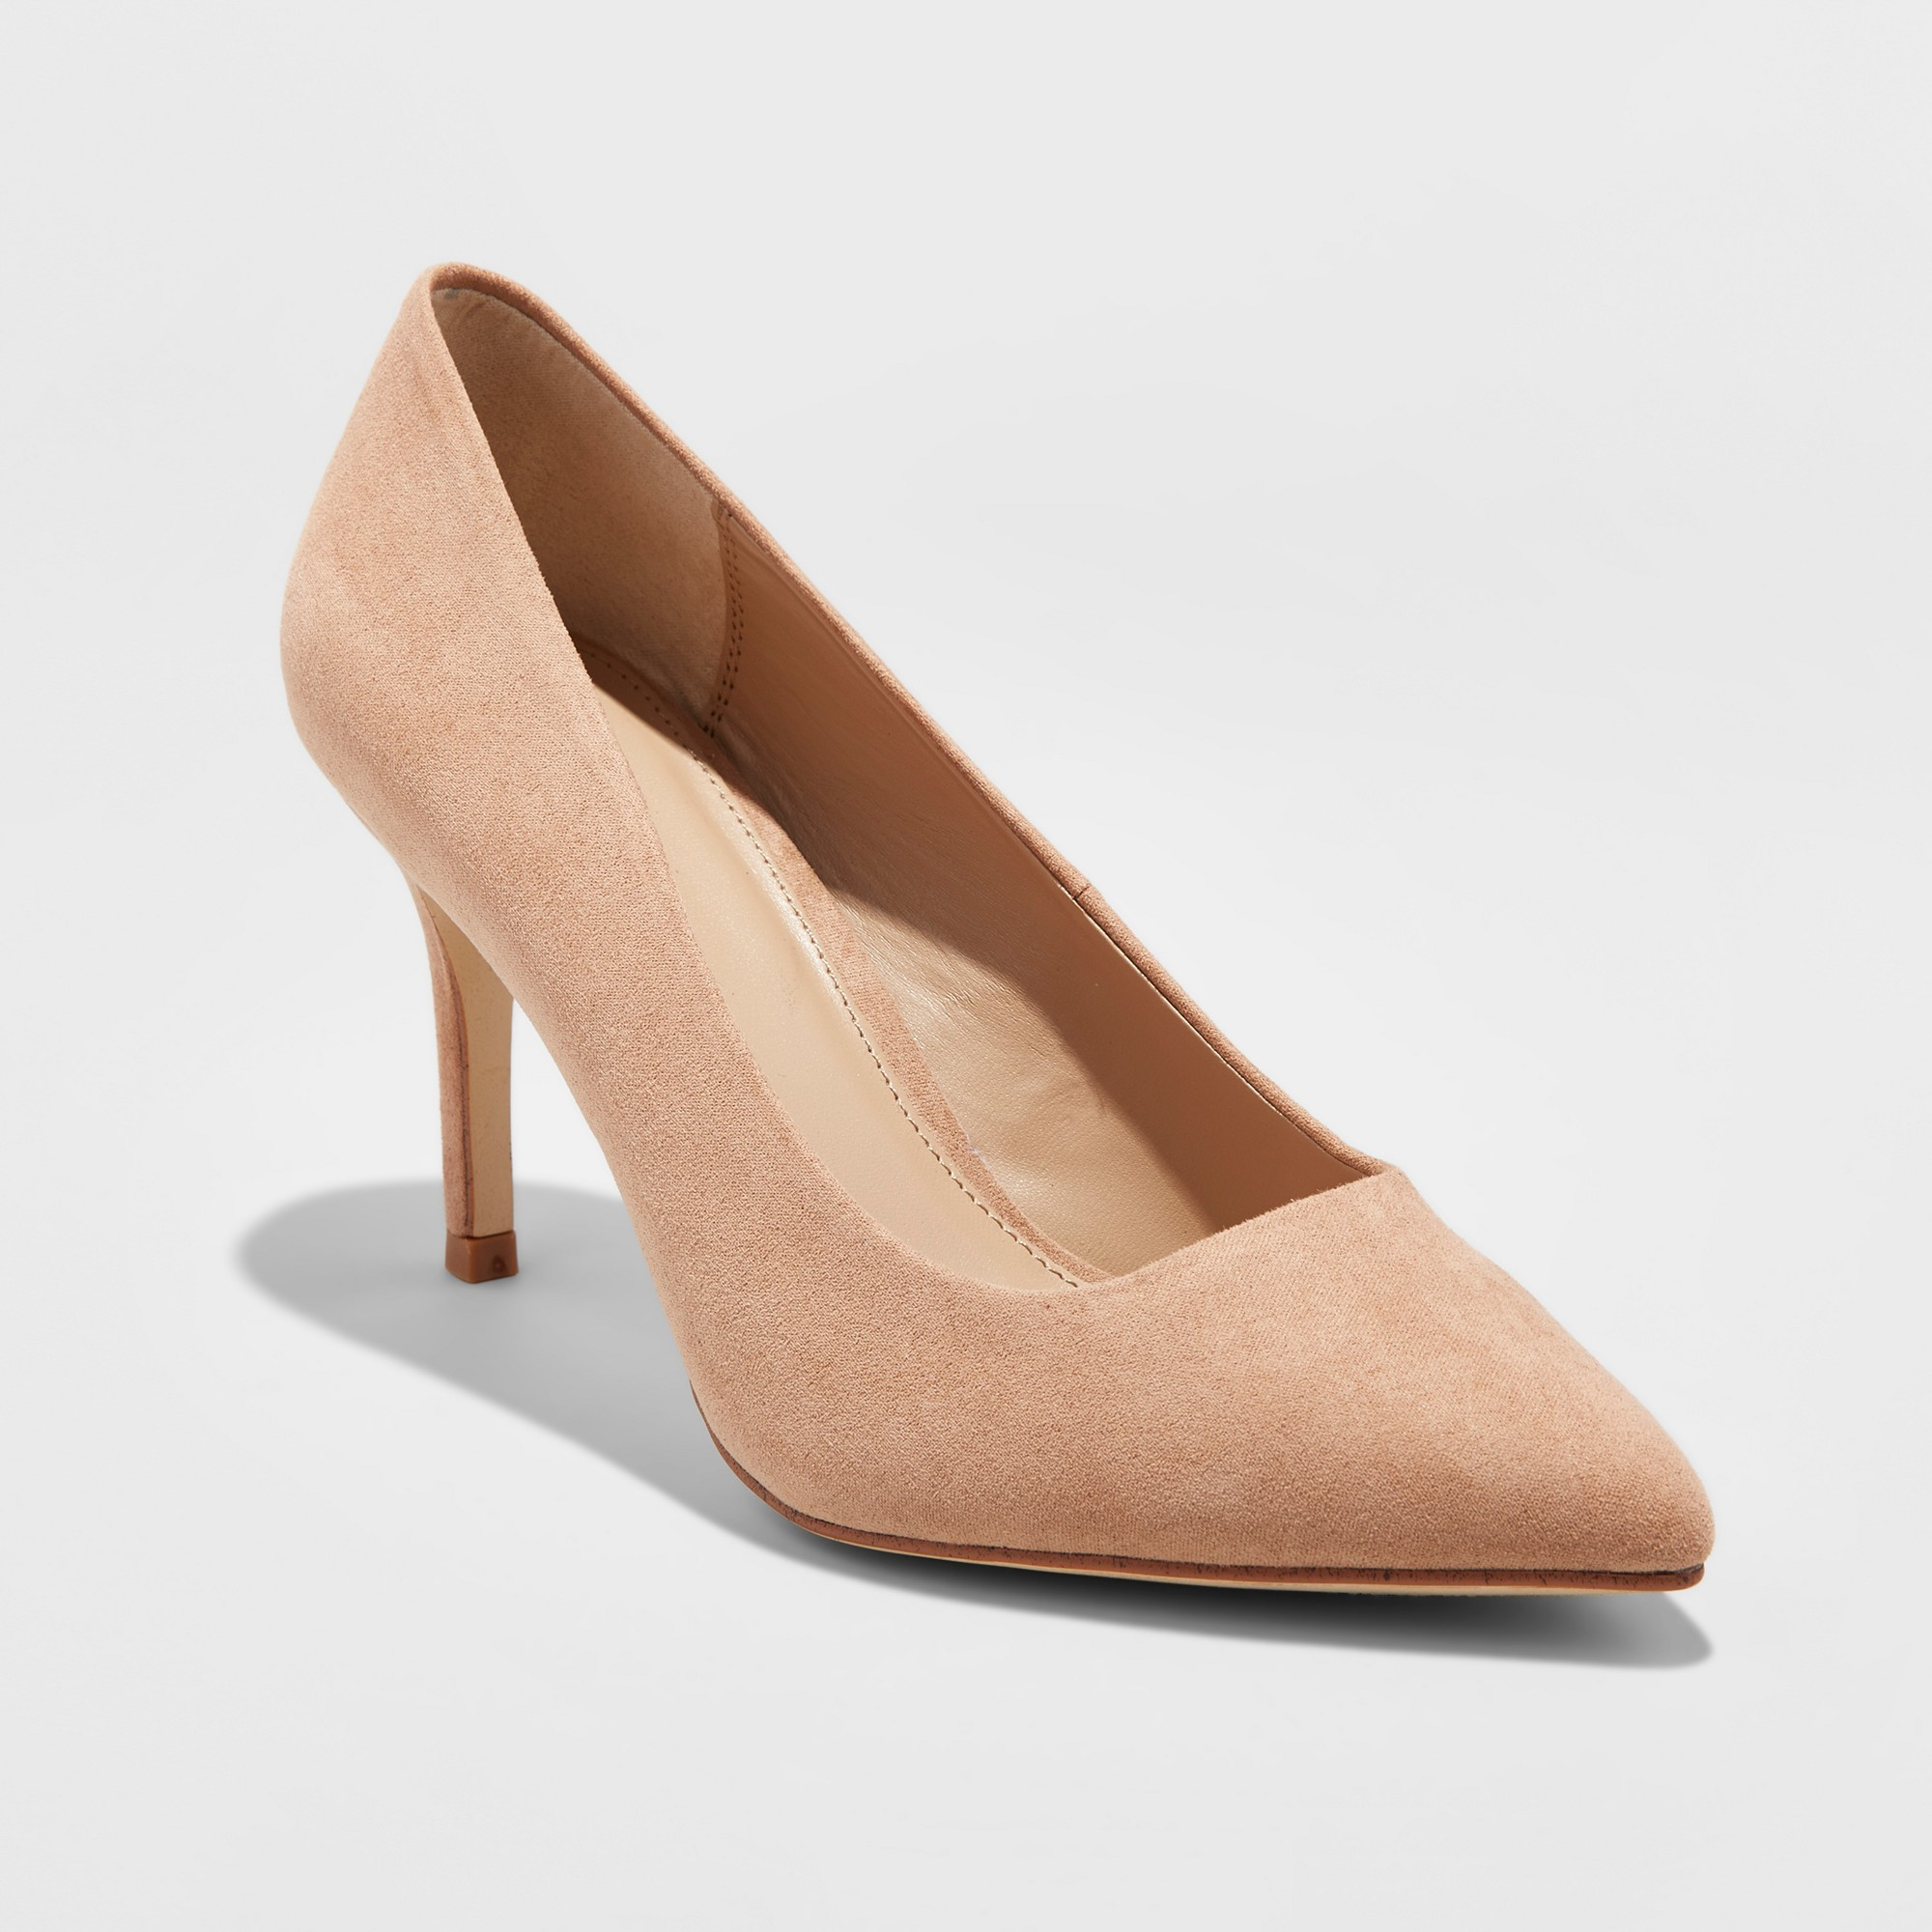 Women's Gemma Wide Width Pointed Toe Nude Pumps - A New Day Pecan 7.5W, Size: 7.5 Wide